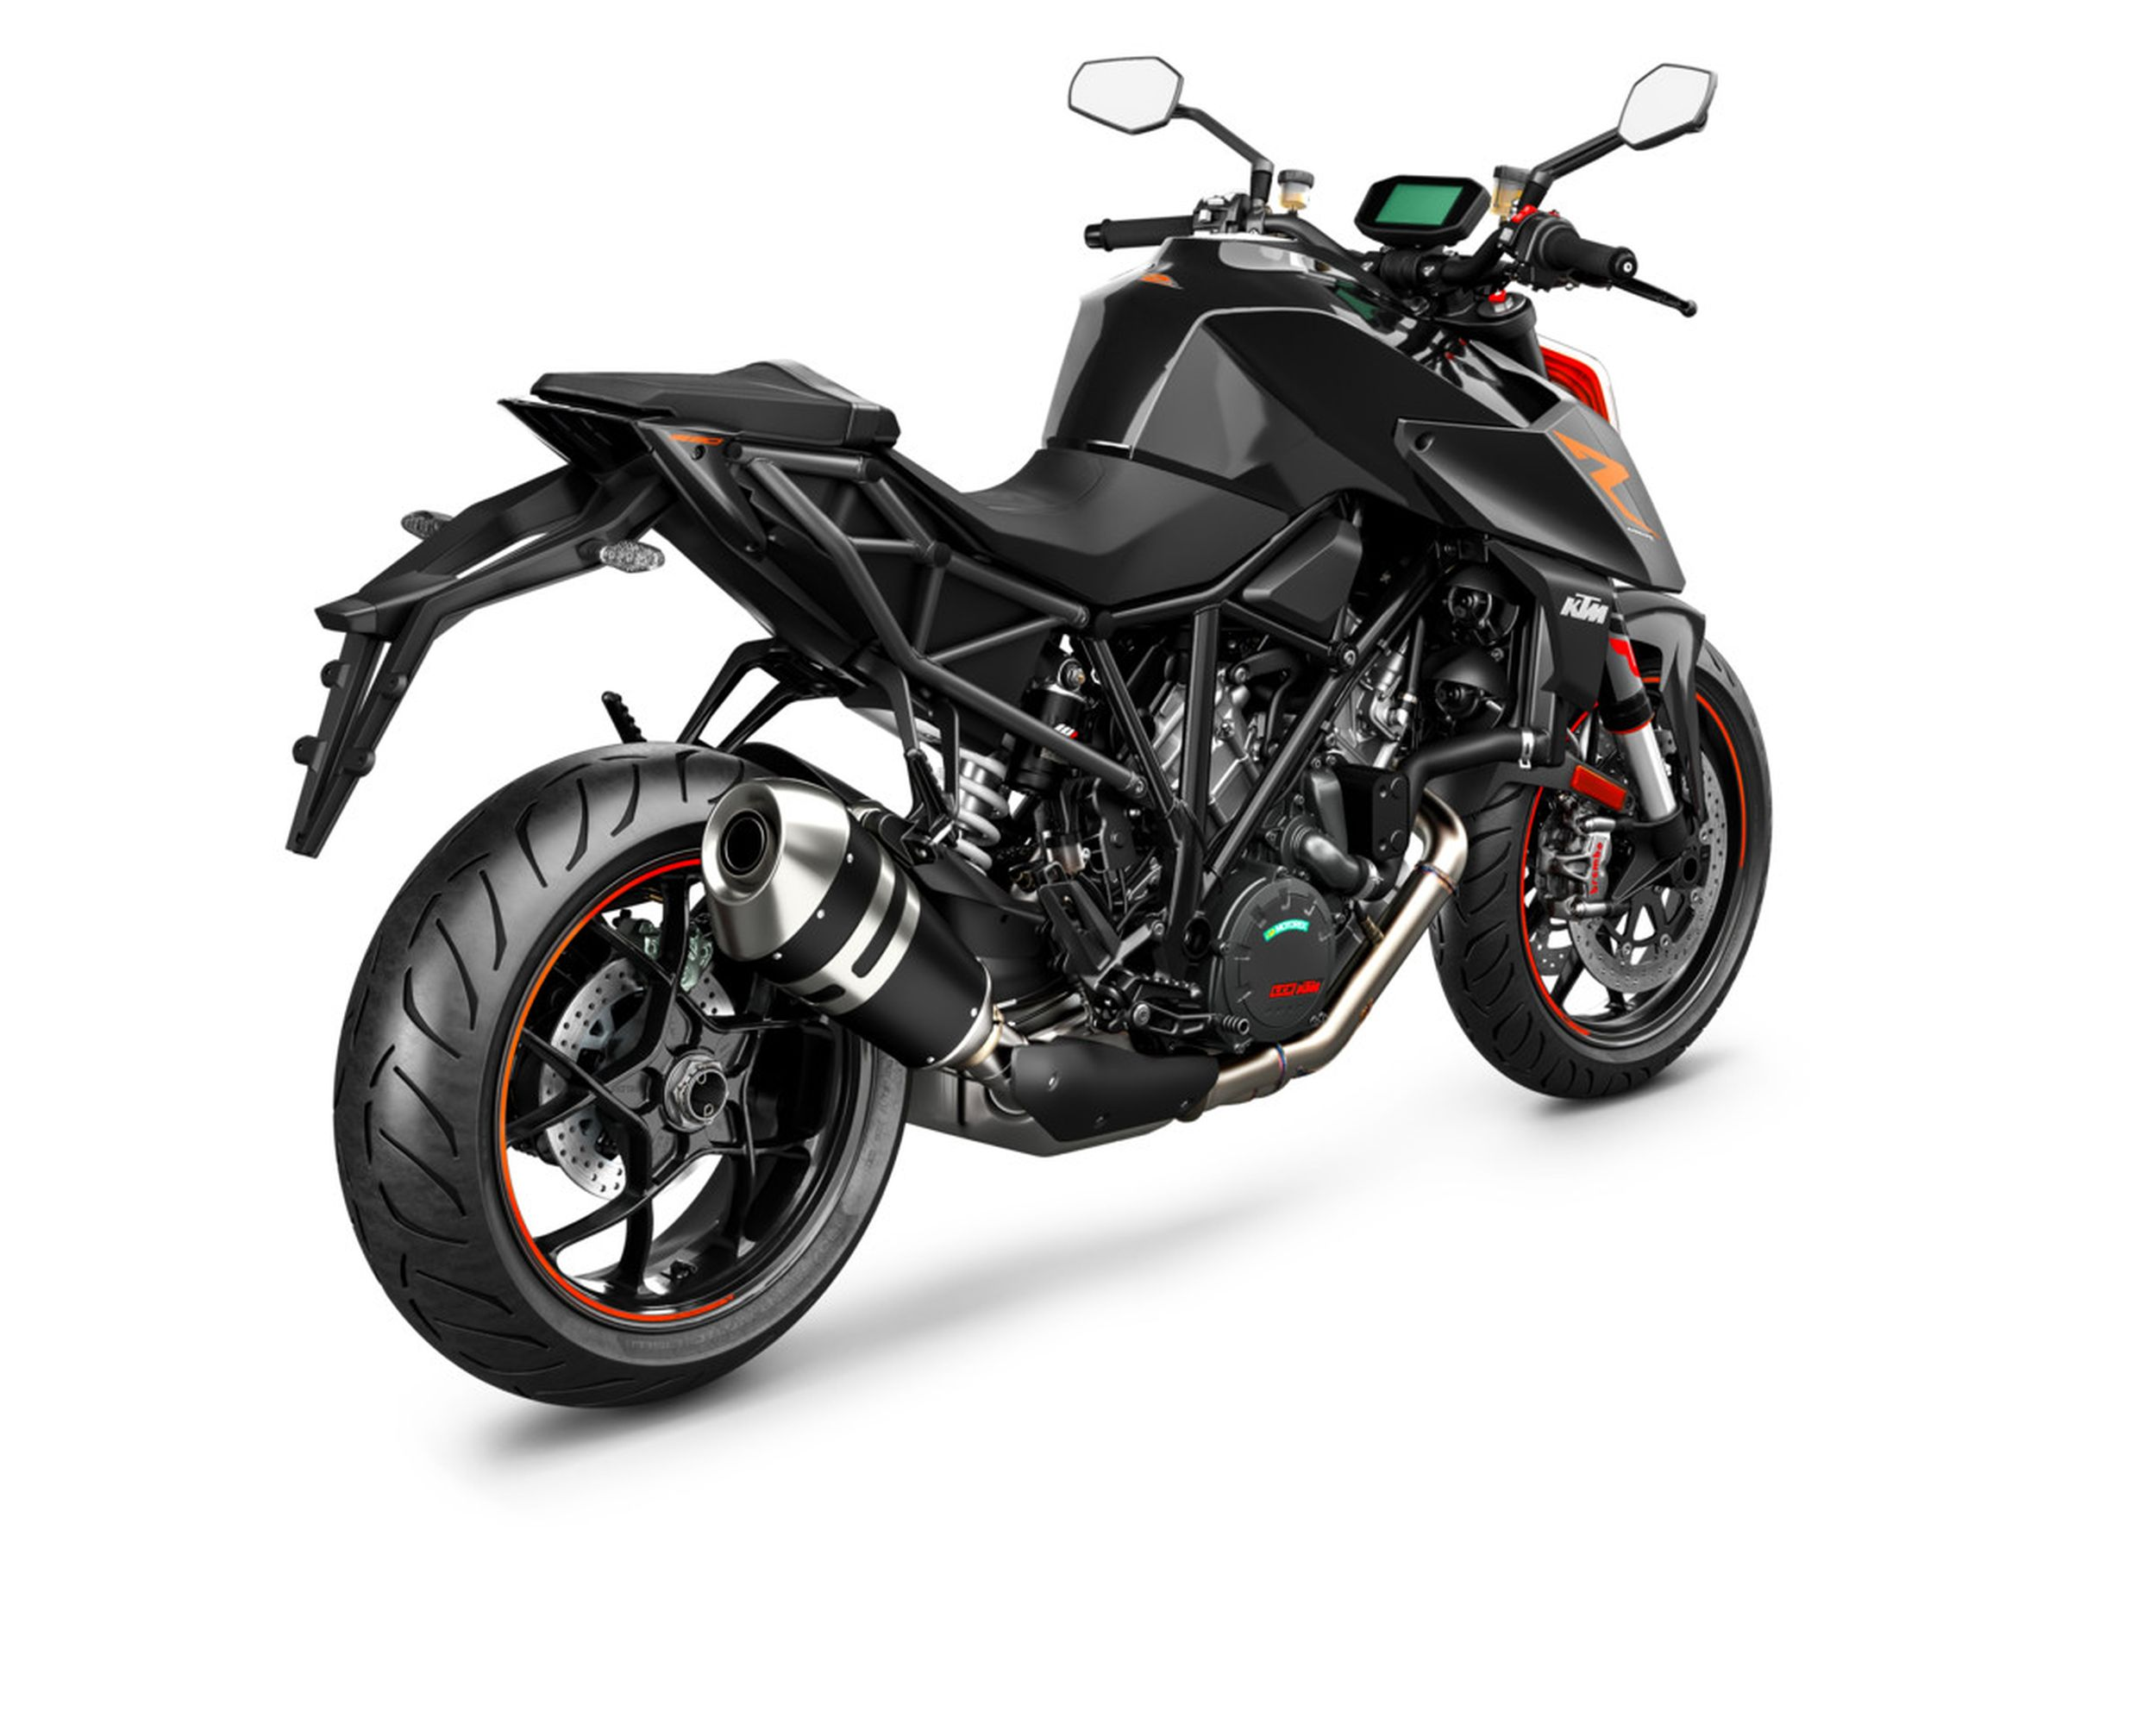 gebrauchte ktm 1290 super duke r motorr der kaufen. Black Bedroom Furniture Sets. Home Design Ideas